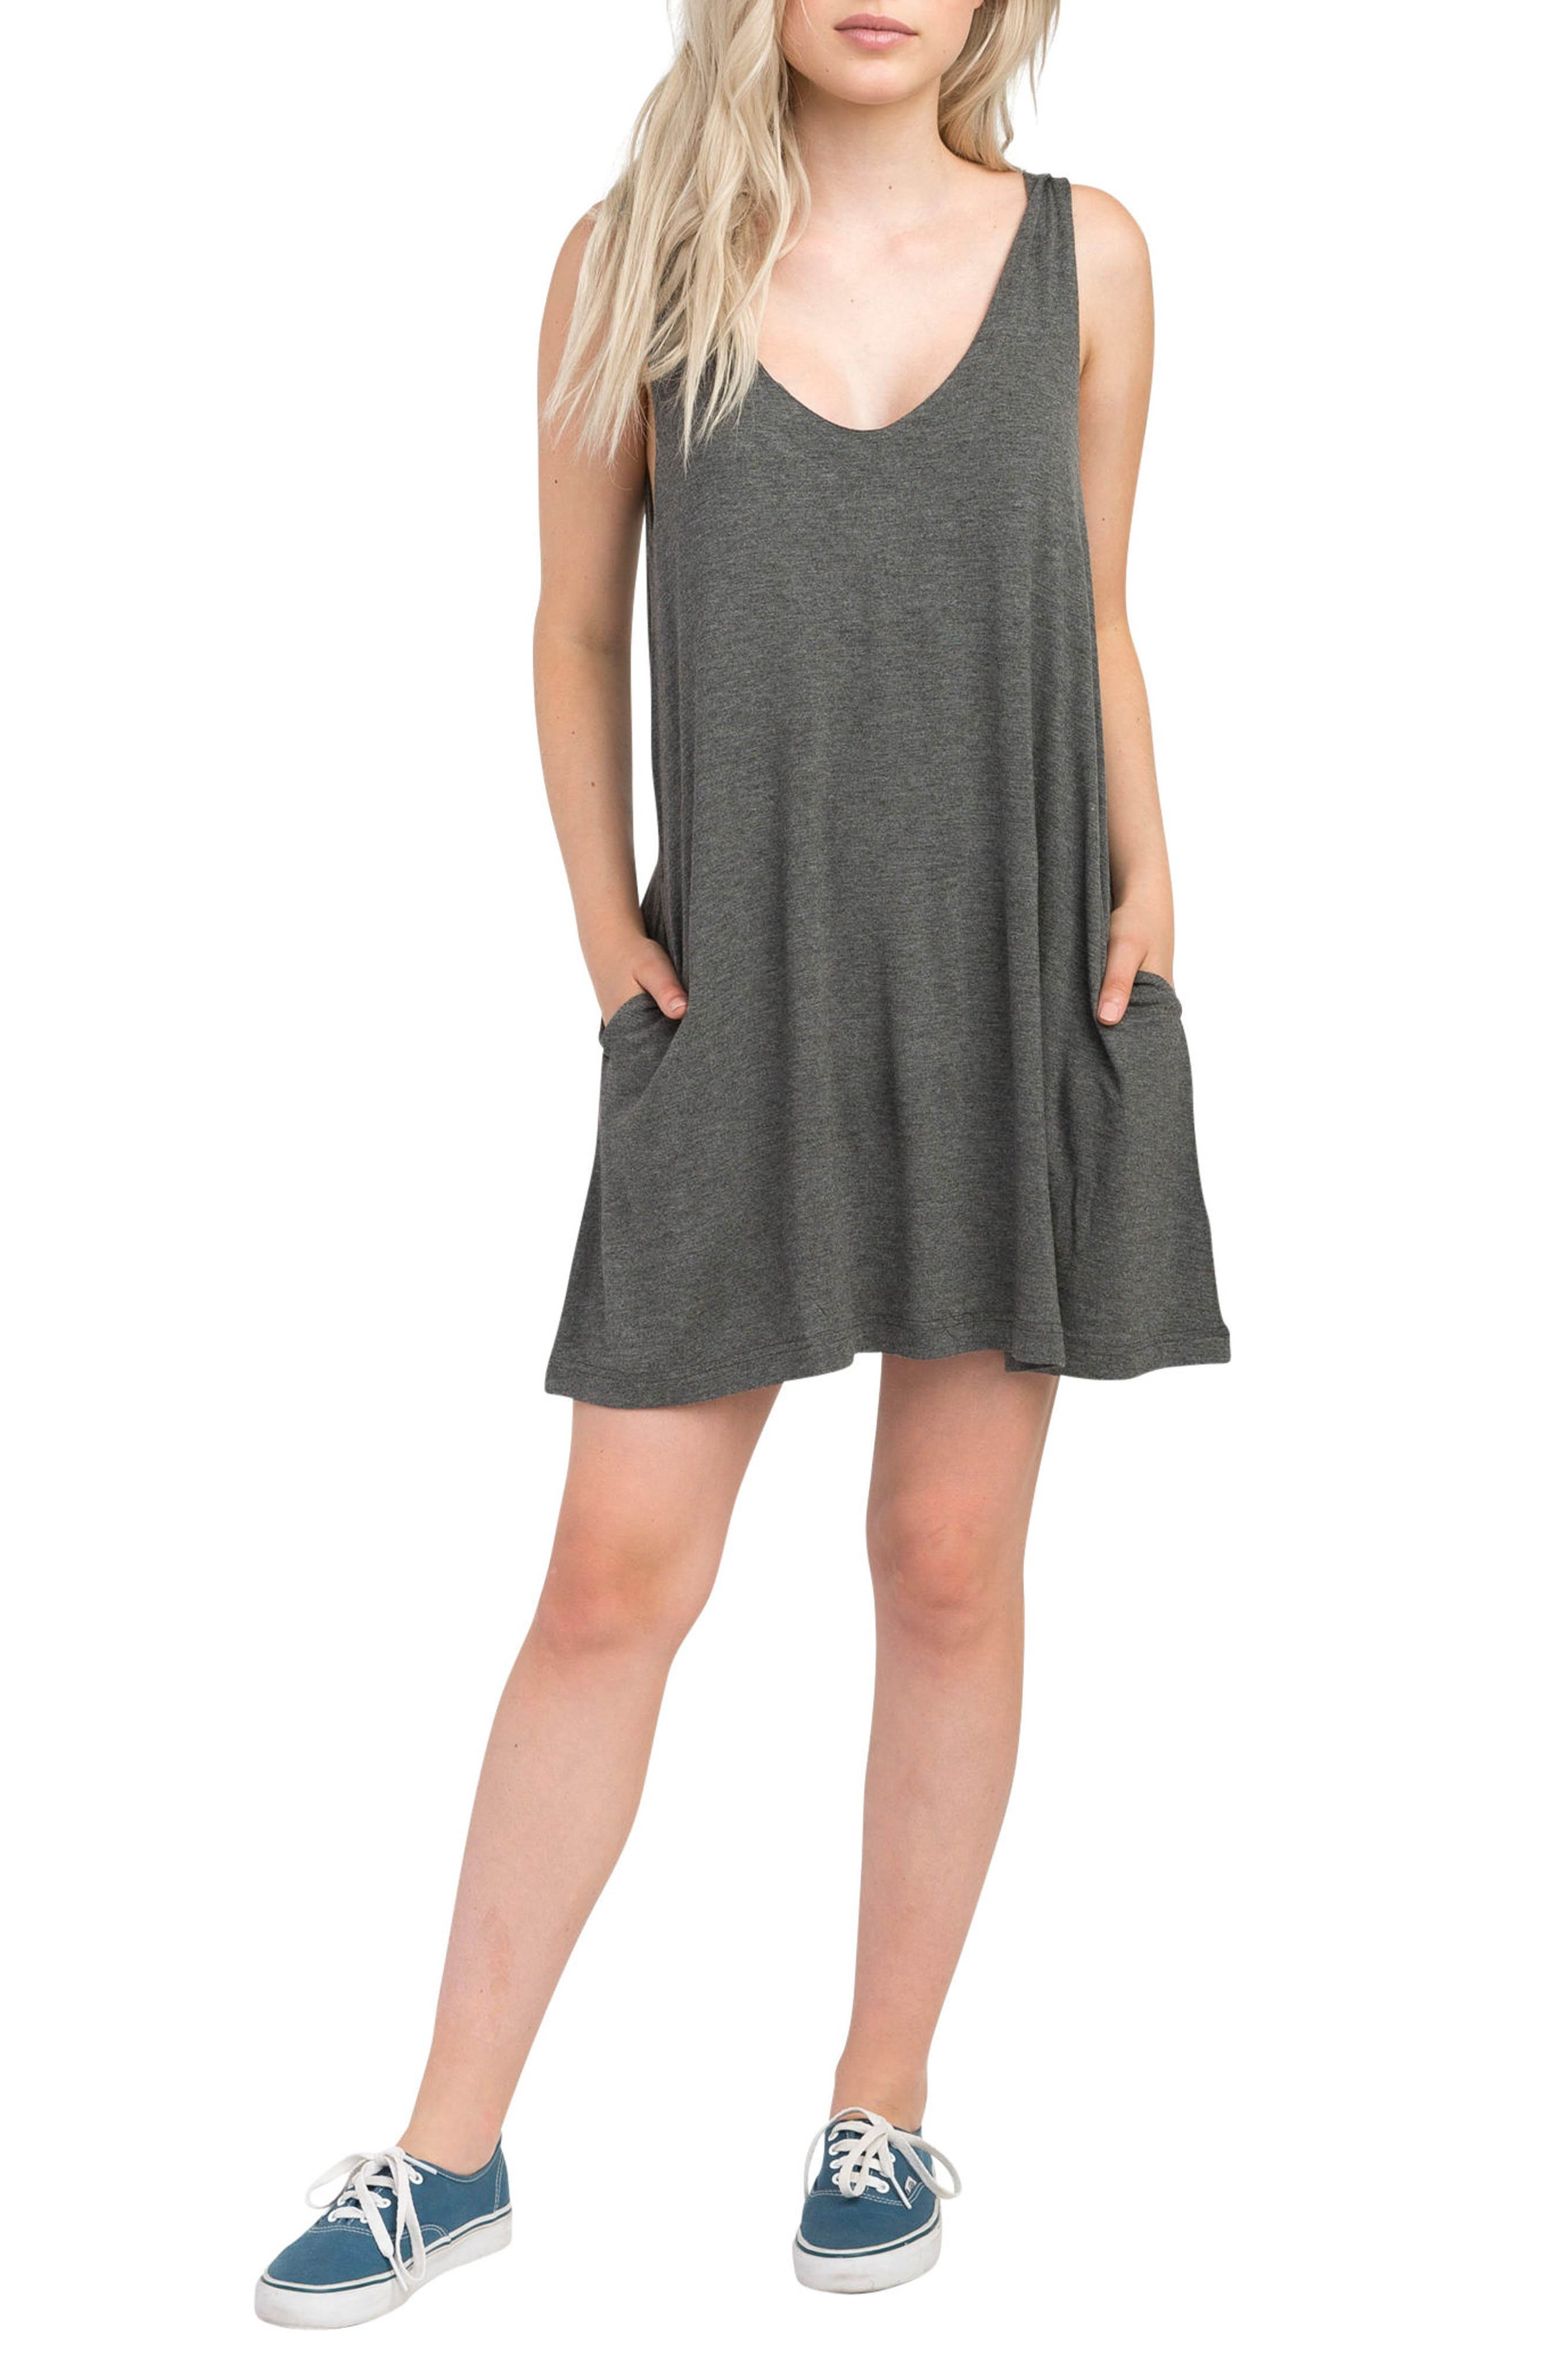 Chances Swing Dress,                         Main,                         color, Charcoal Heather